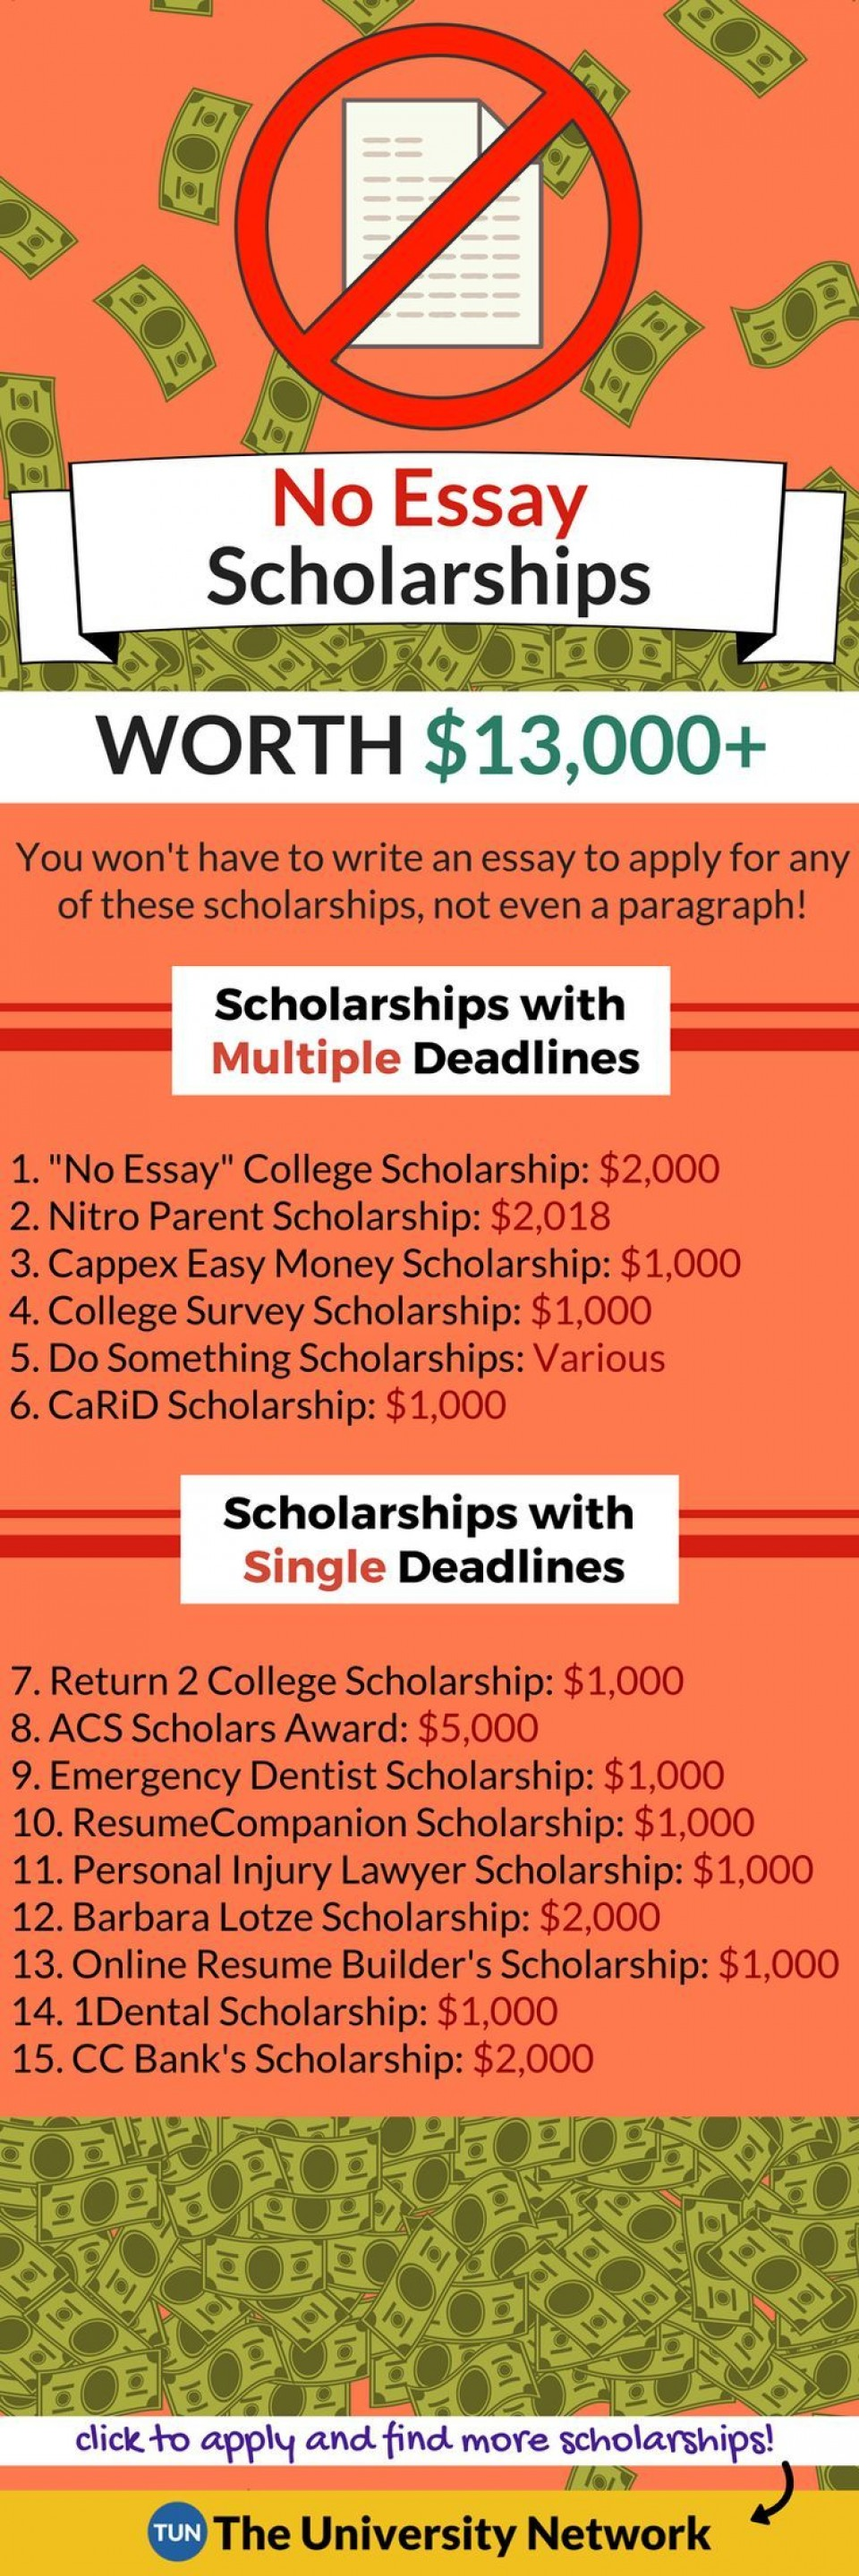 013 Essay Example No Exceptional Scholarships December 2018 For Undergraduates 960